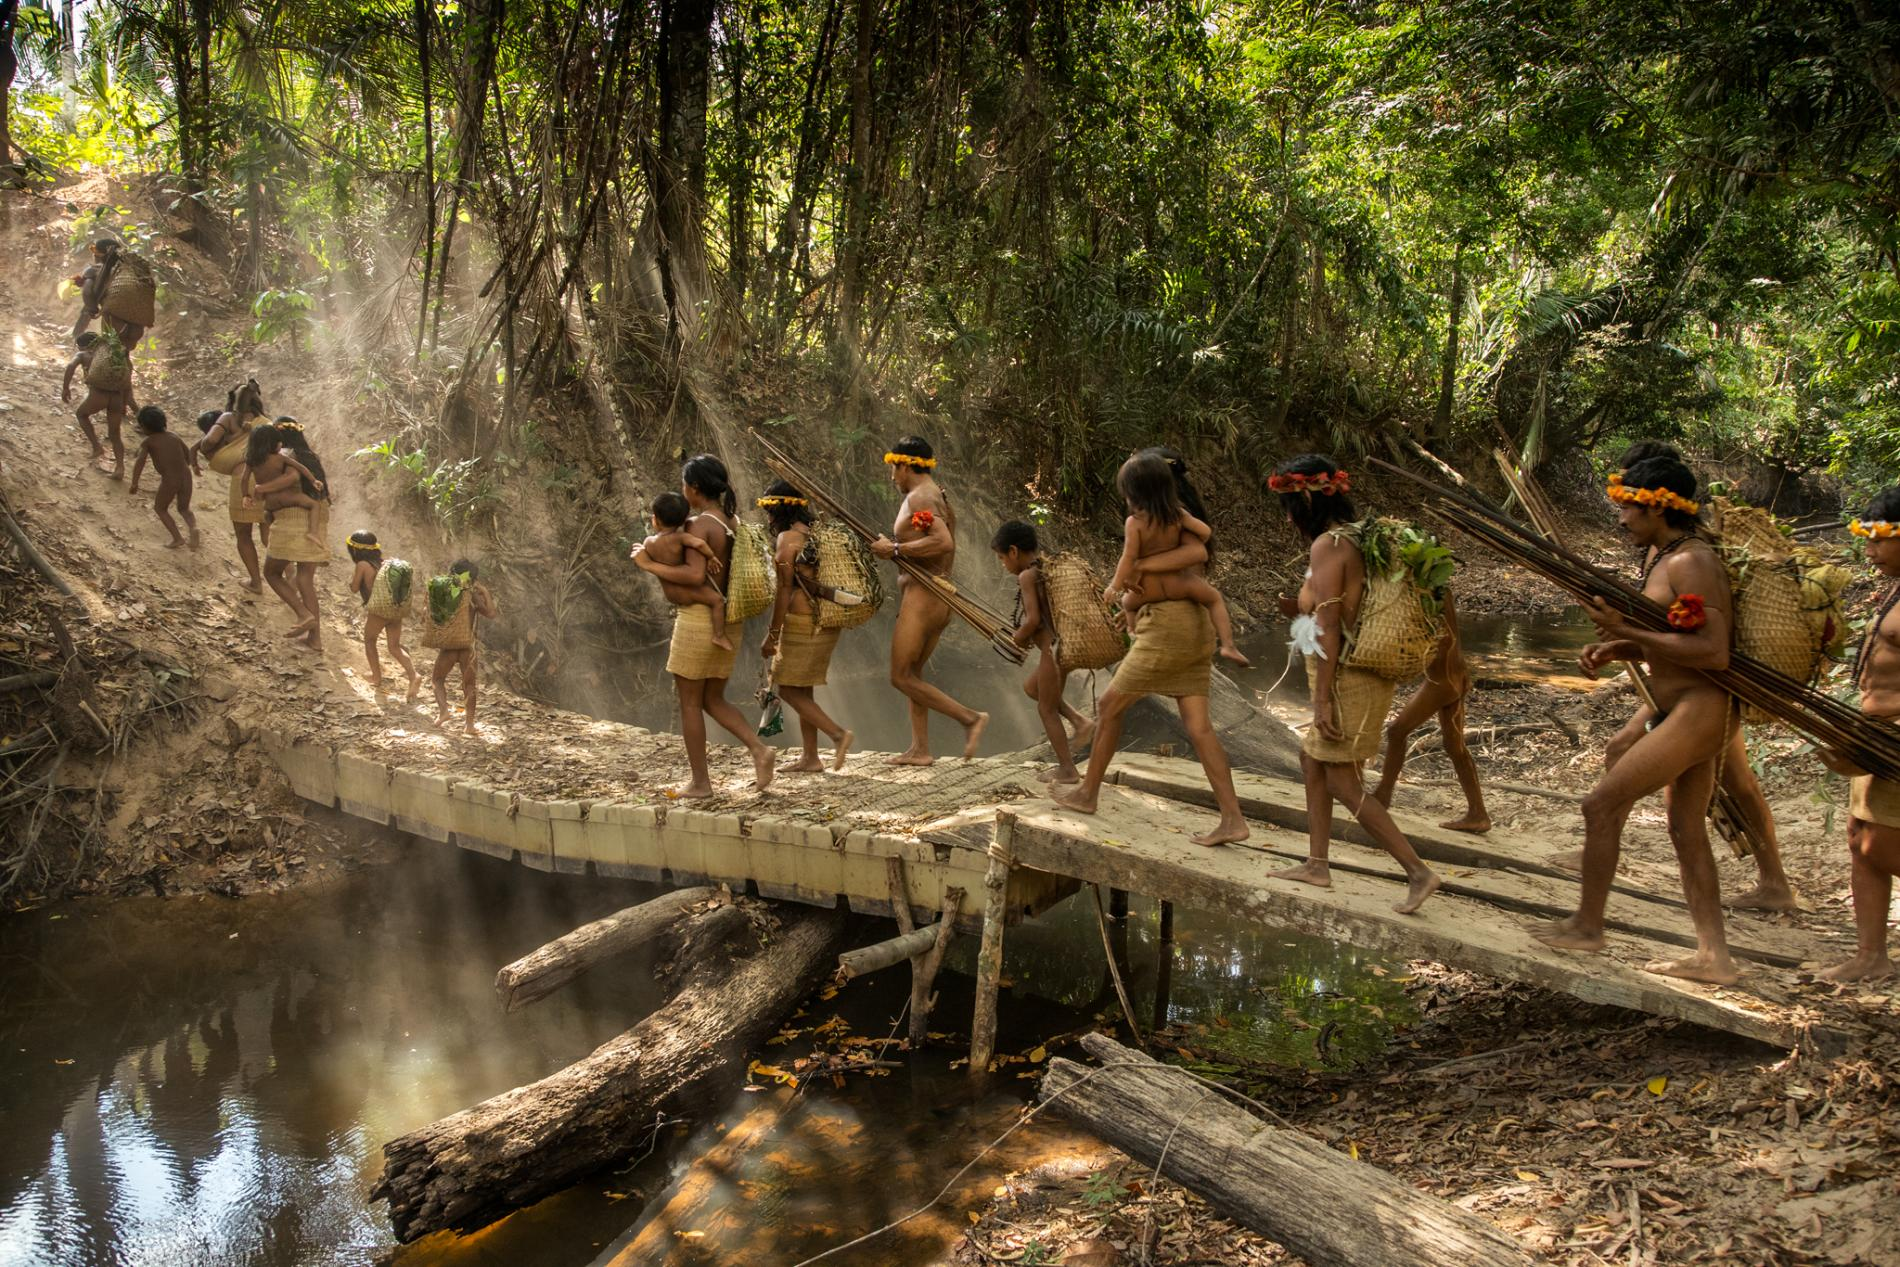 Threatened Amazon, Awa family living in the forests.